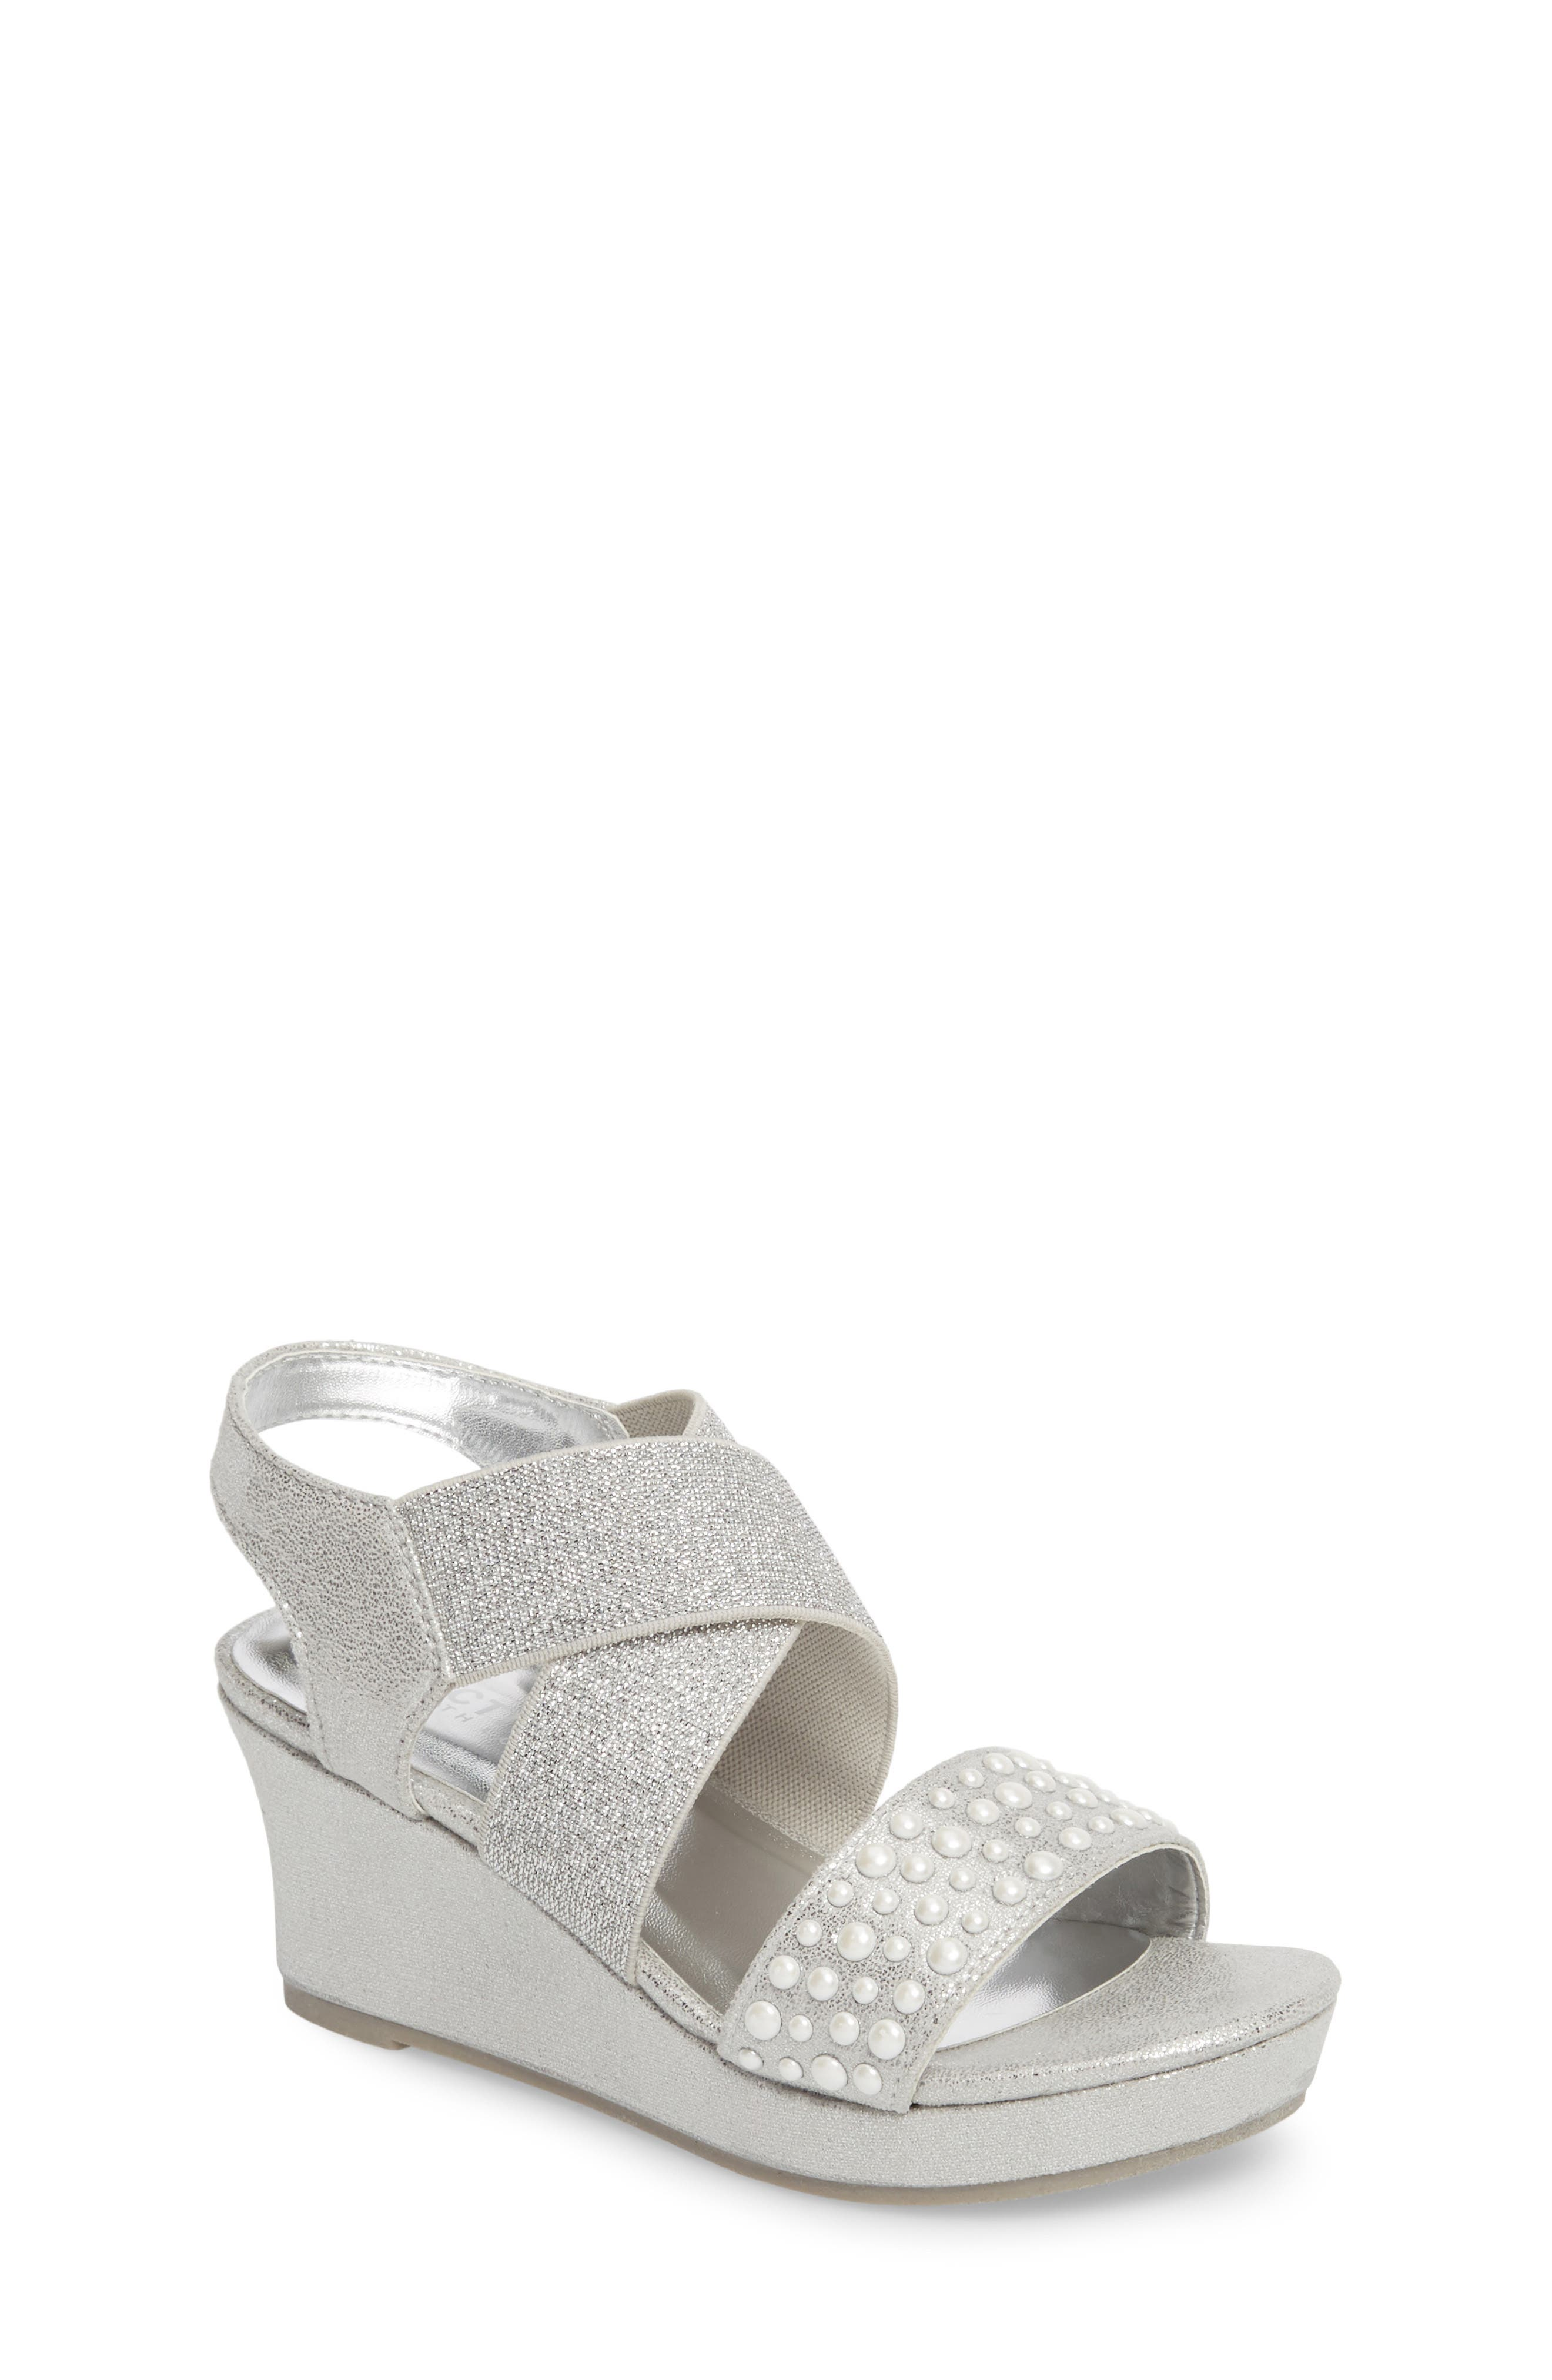 Reed Glimmer Wedge Sandal,                             Main thumbnail 1, color,                             Silver